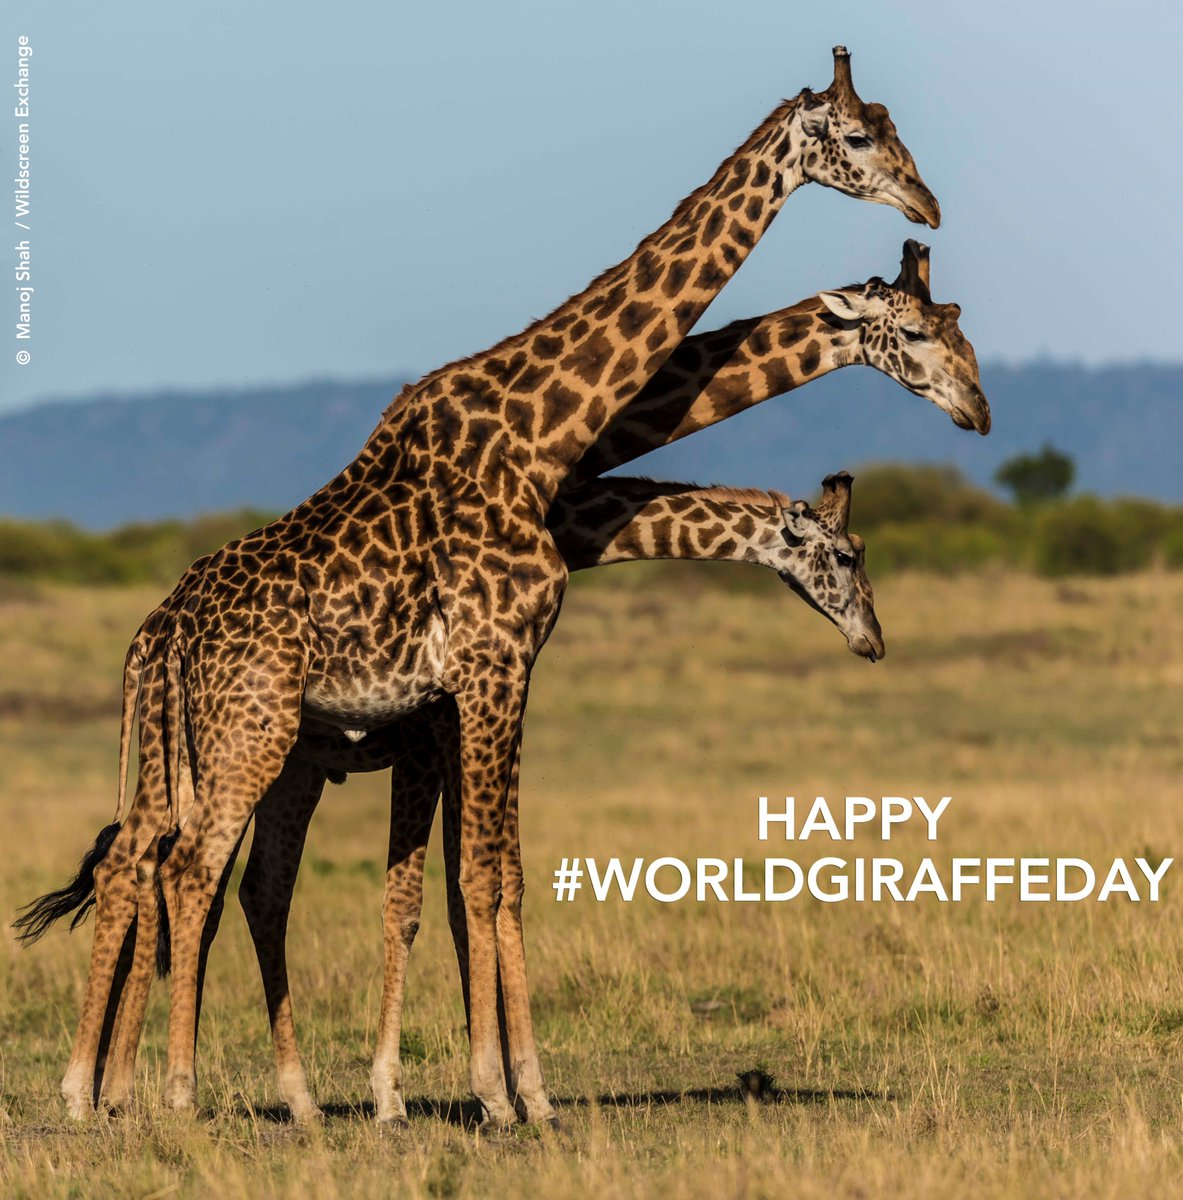 Happy #WorldGiraffeDay! RT to show your love for these spectacularly tall & graceful giants. https://t.co/Ka9FPFjTIz